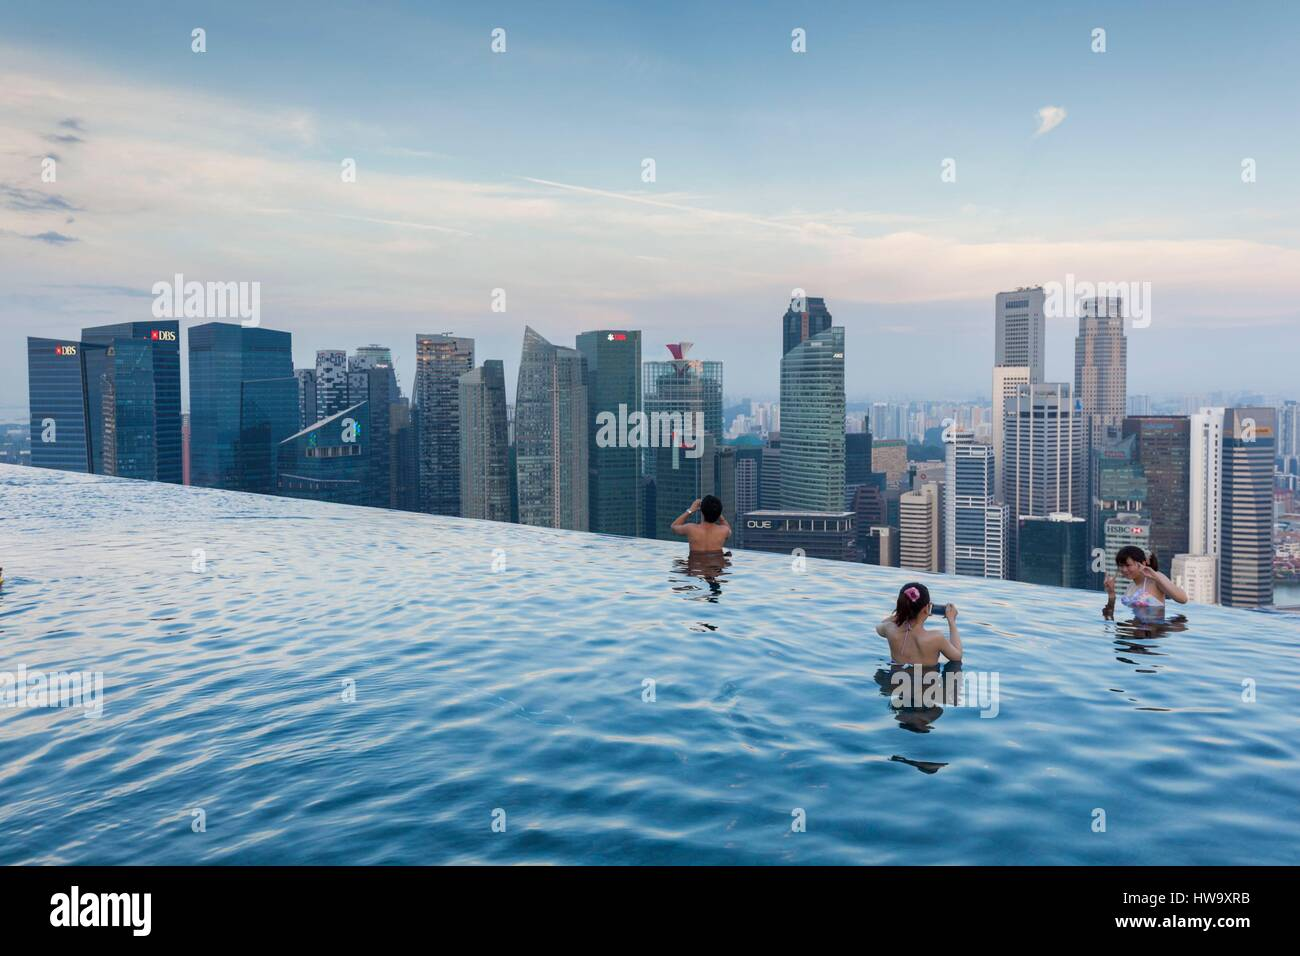 Singapore Marina Bay Sands Hotel Rooftop Swimming Pool Dawn Stock Photo 136057583 Alamy